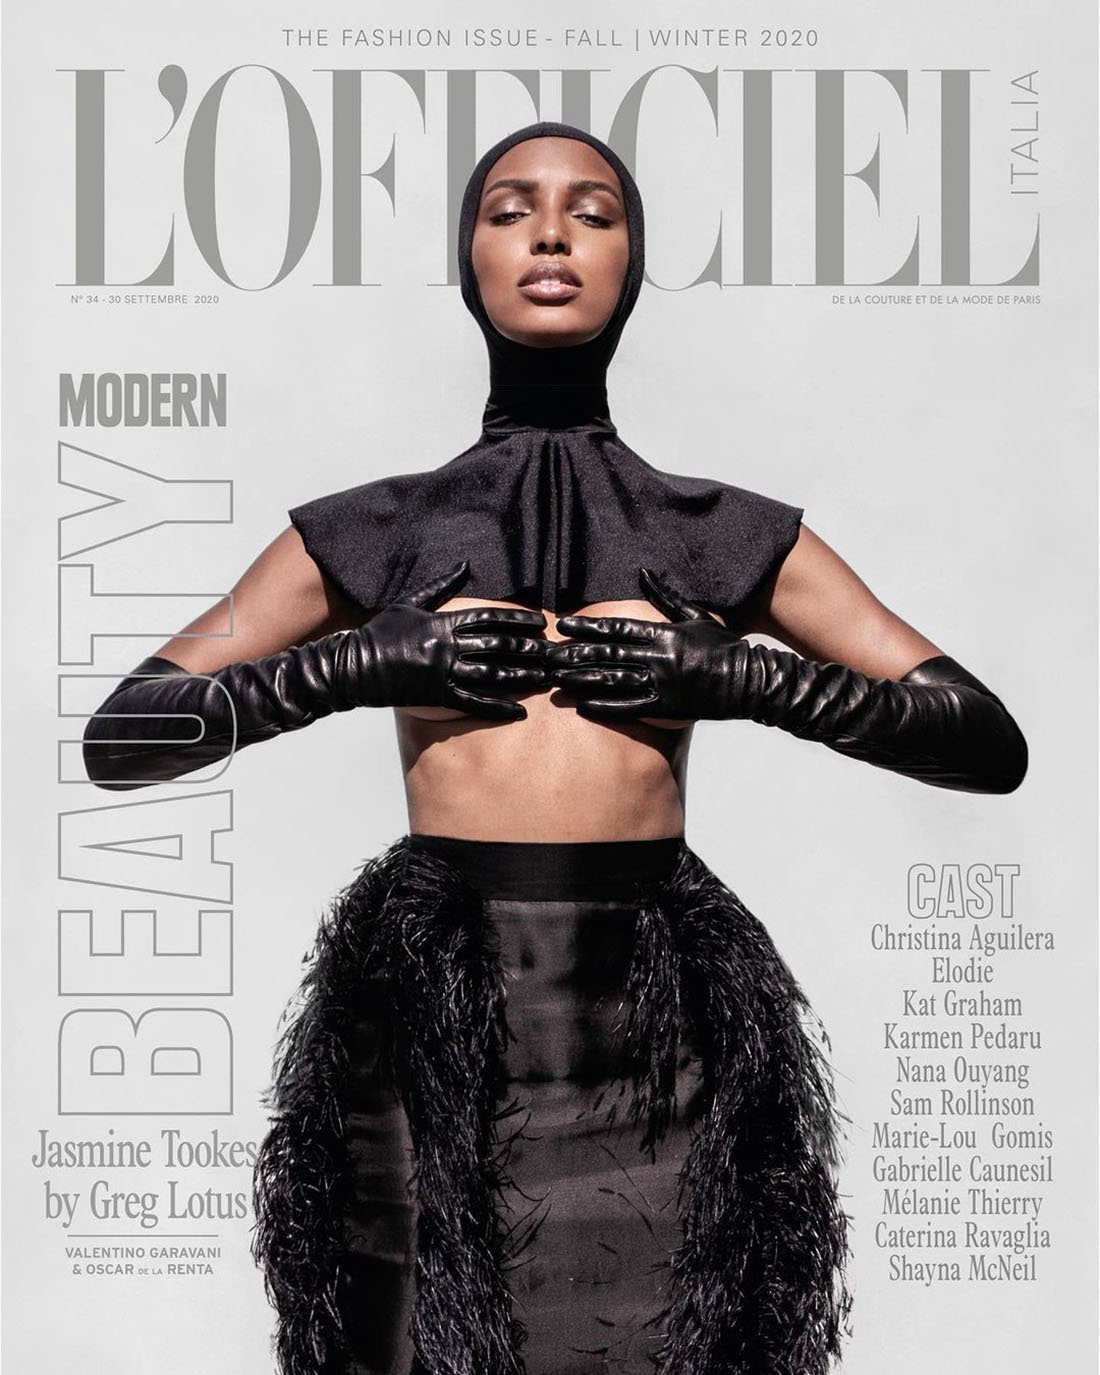 Jasmine Tookes covers L'Officiel Italia September 2020 by Greg Lotus